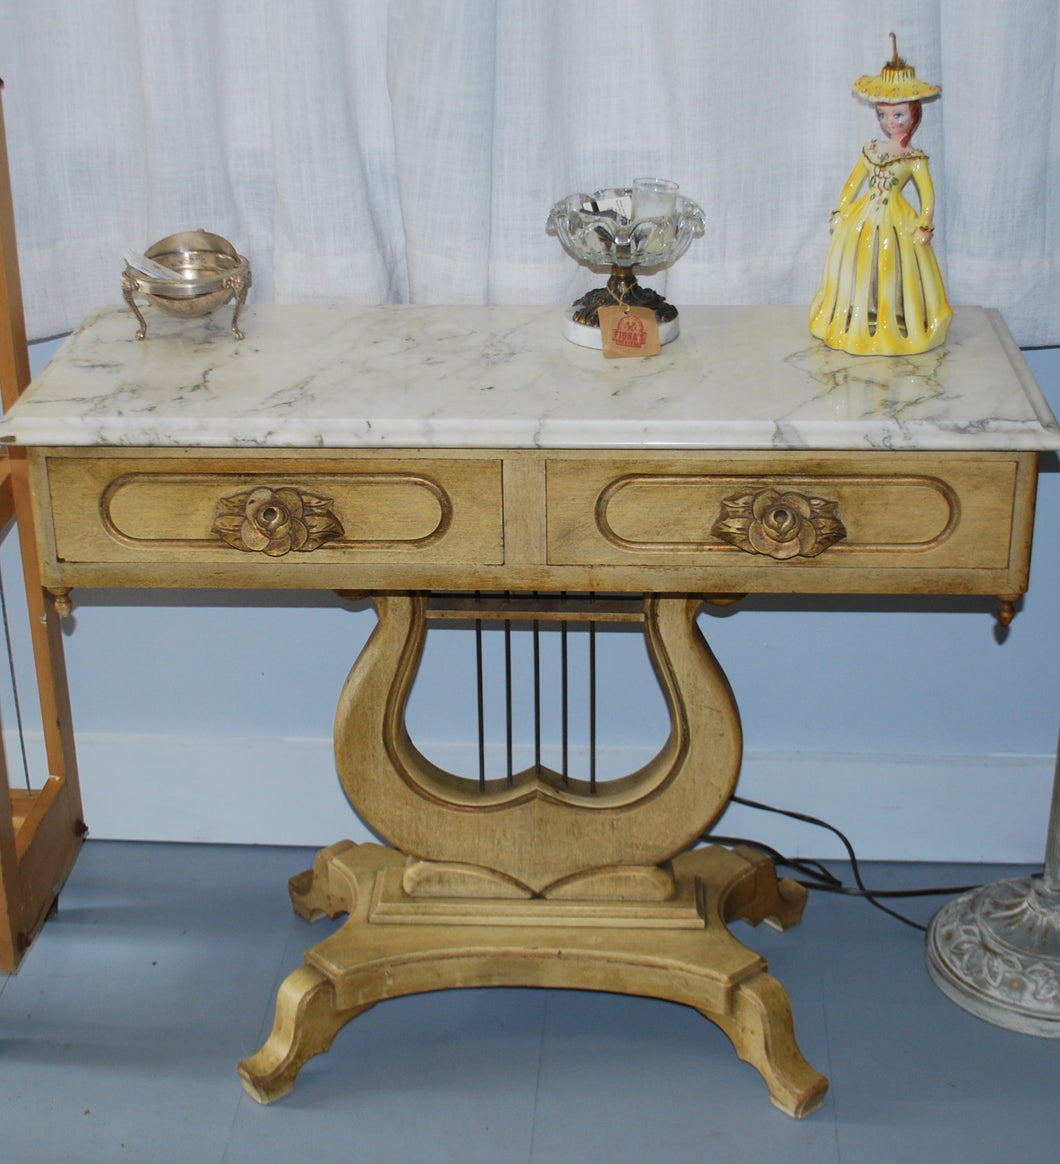 1900's Victorian Lyre Harp Table